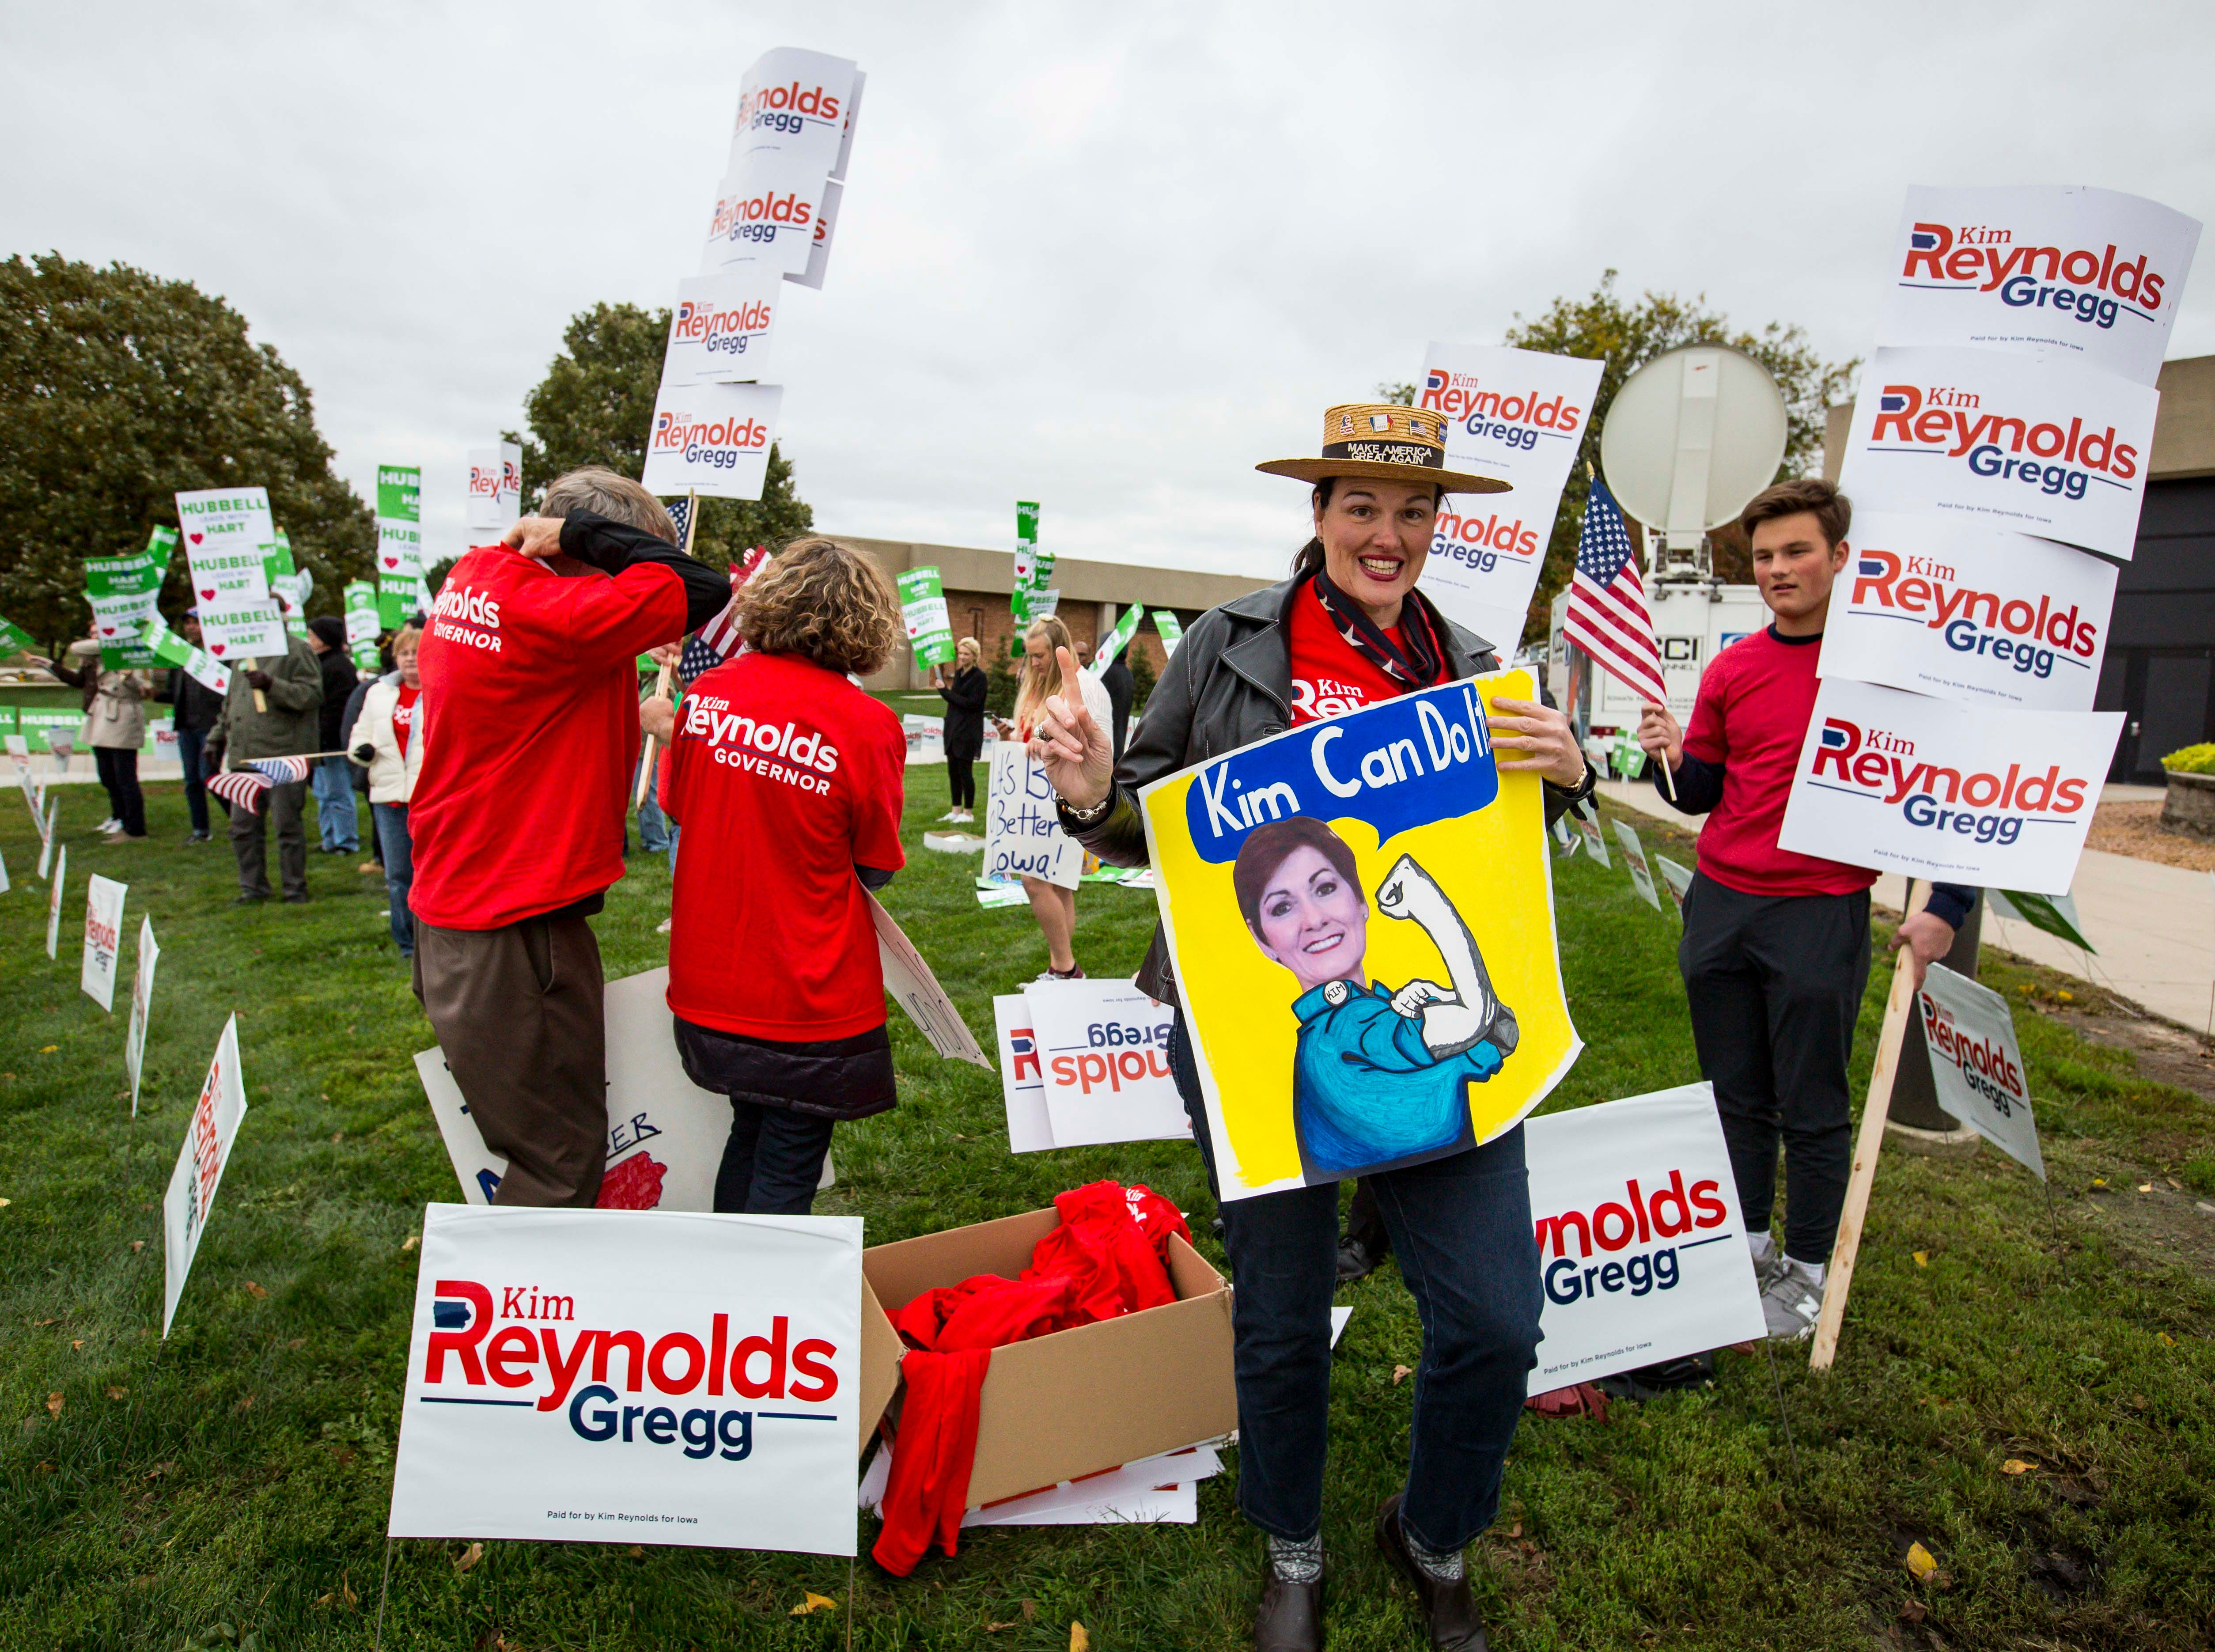 Supporters of Republican Iowa Gov. Kim Reynolds and Democratic challenger Fred Hubbell cheer before the debate Wednesday, Oct. 10, 2018, at Des Moines Area Community College in Ankeny, Iowa.